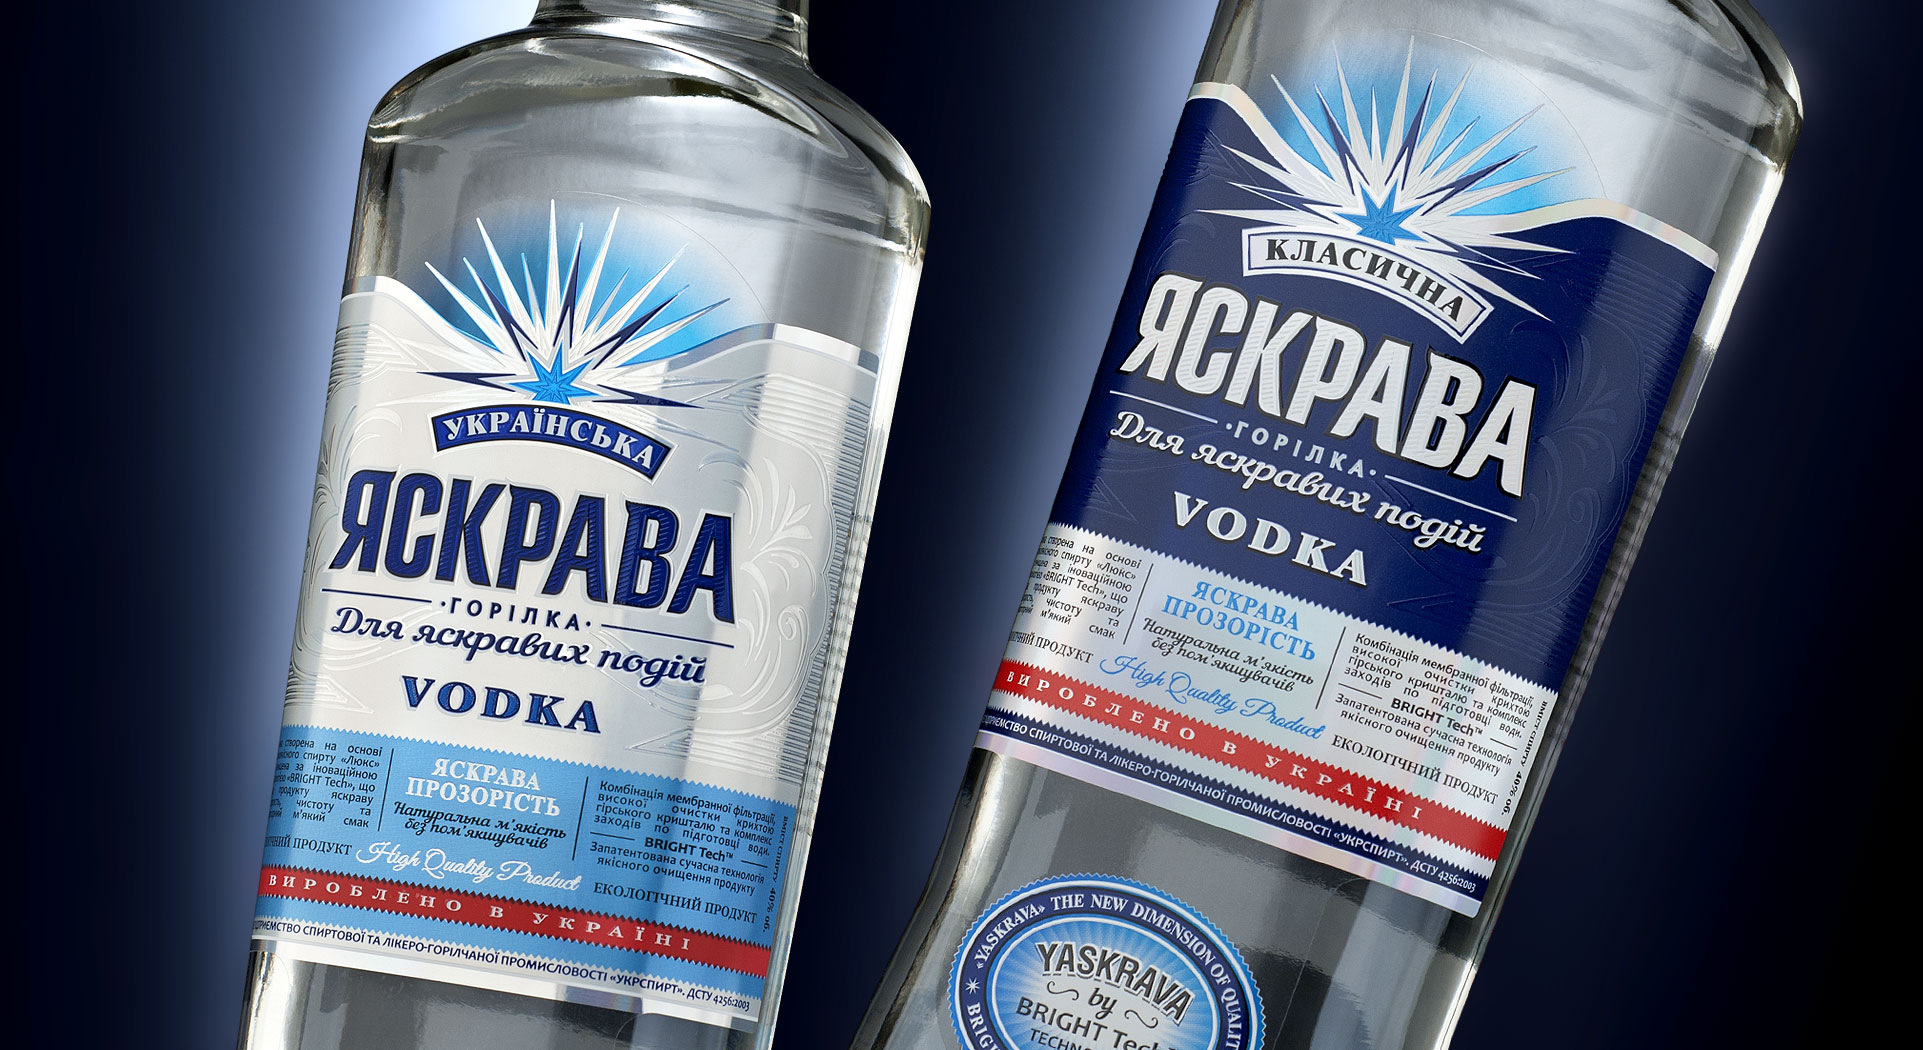 Vodka YASKRAVA range design. Bright vodka for bright events.